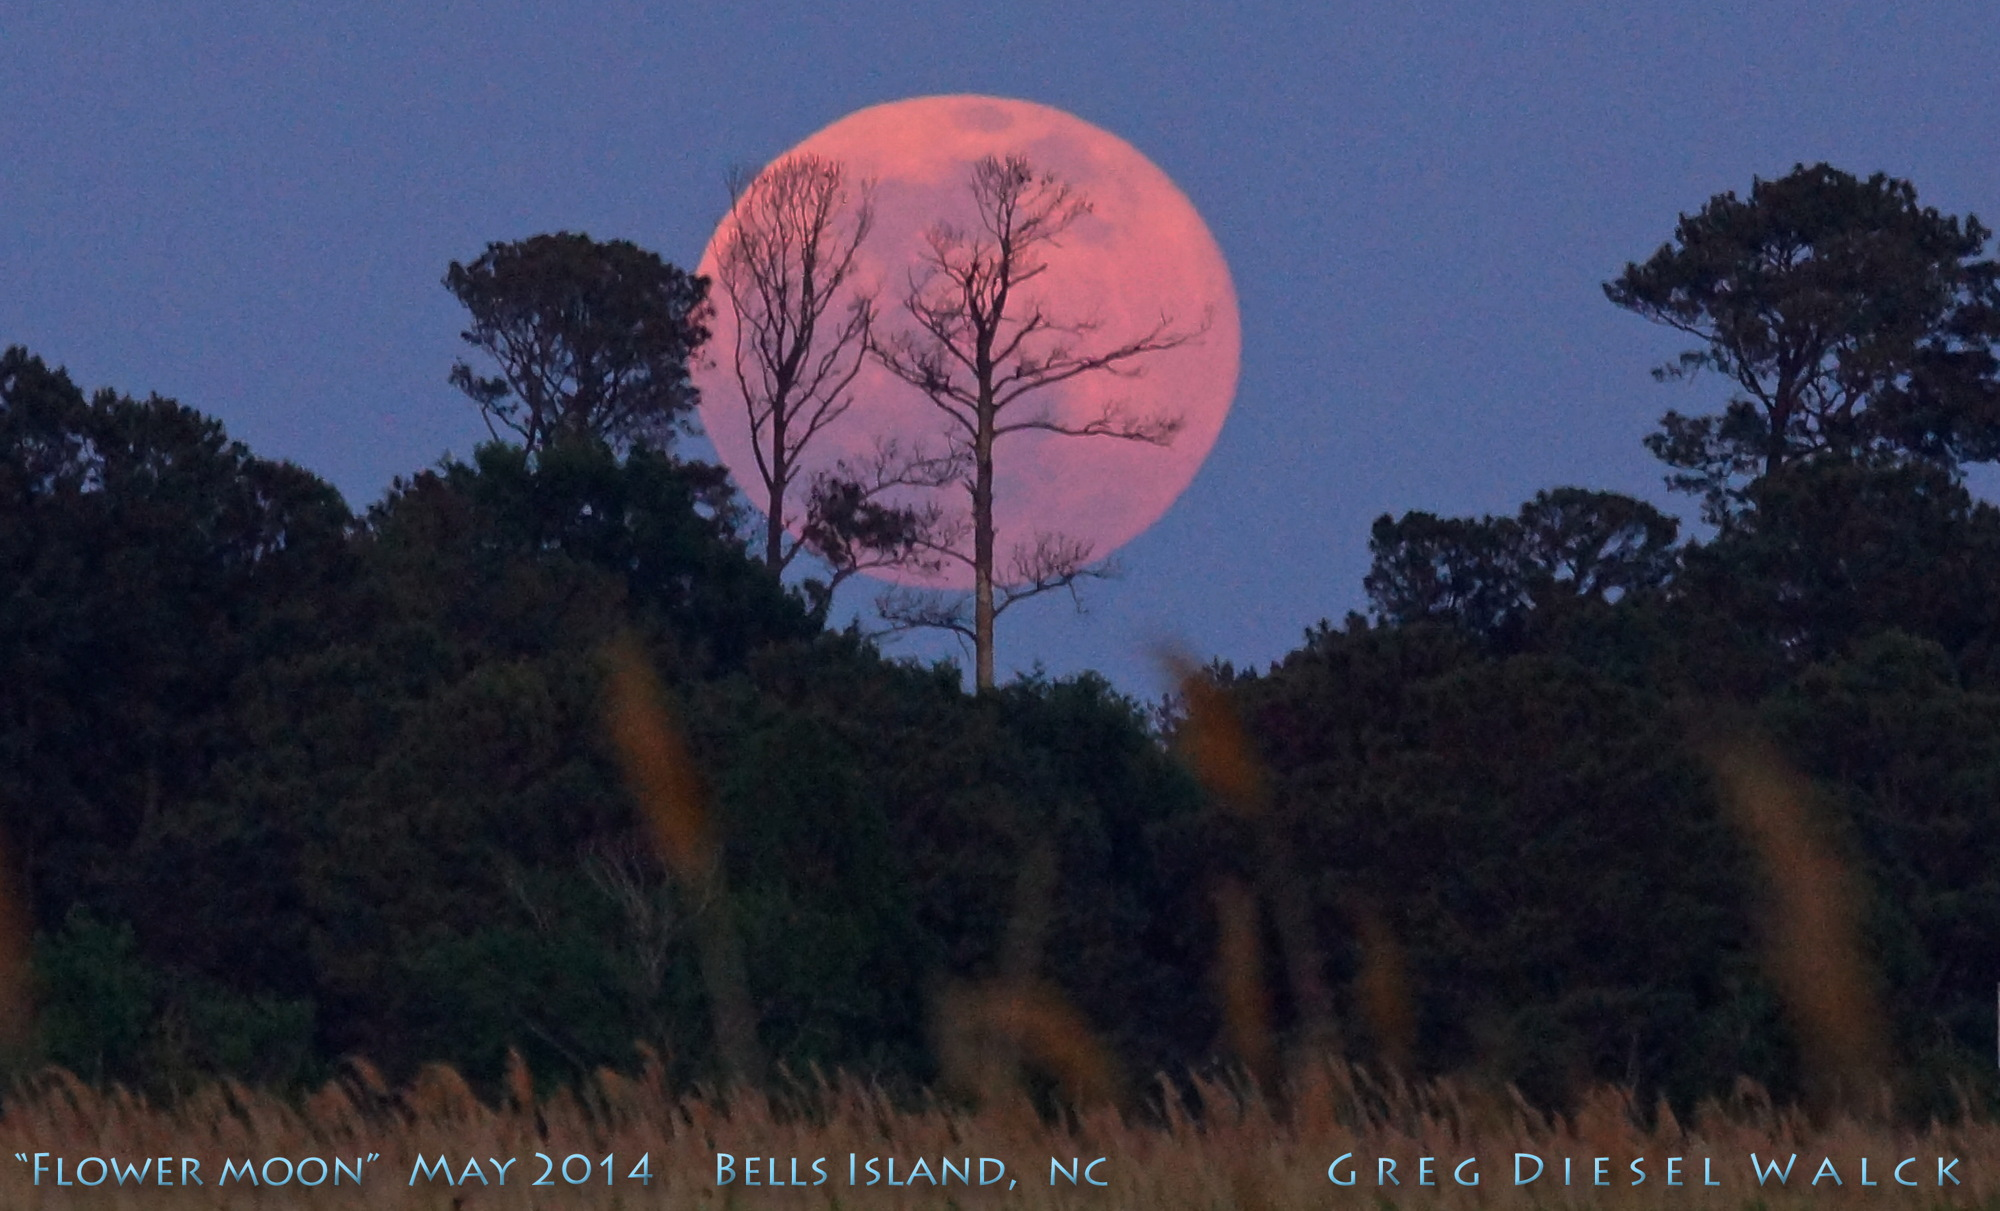 Majestic Full Flower Moon Rises Over North Carolina (Photo)